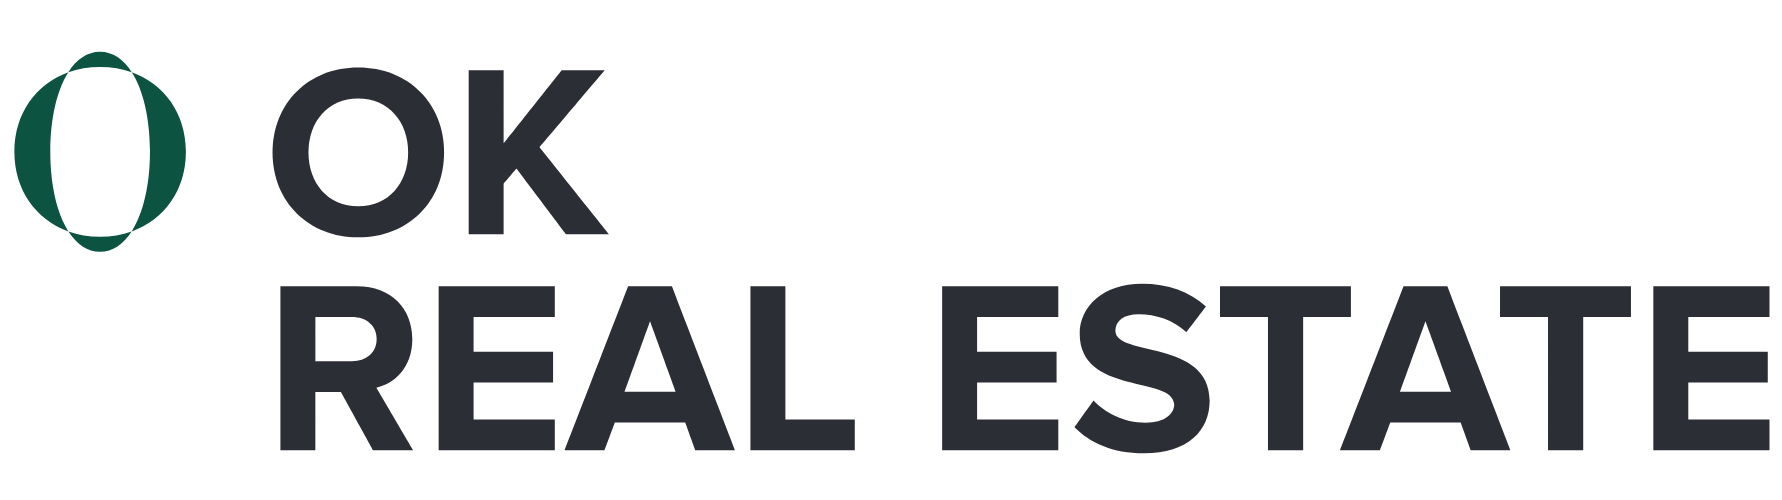 OK REAL ESTATE s.r.o.